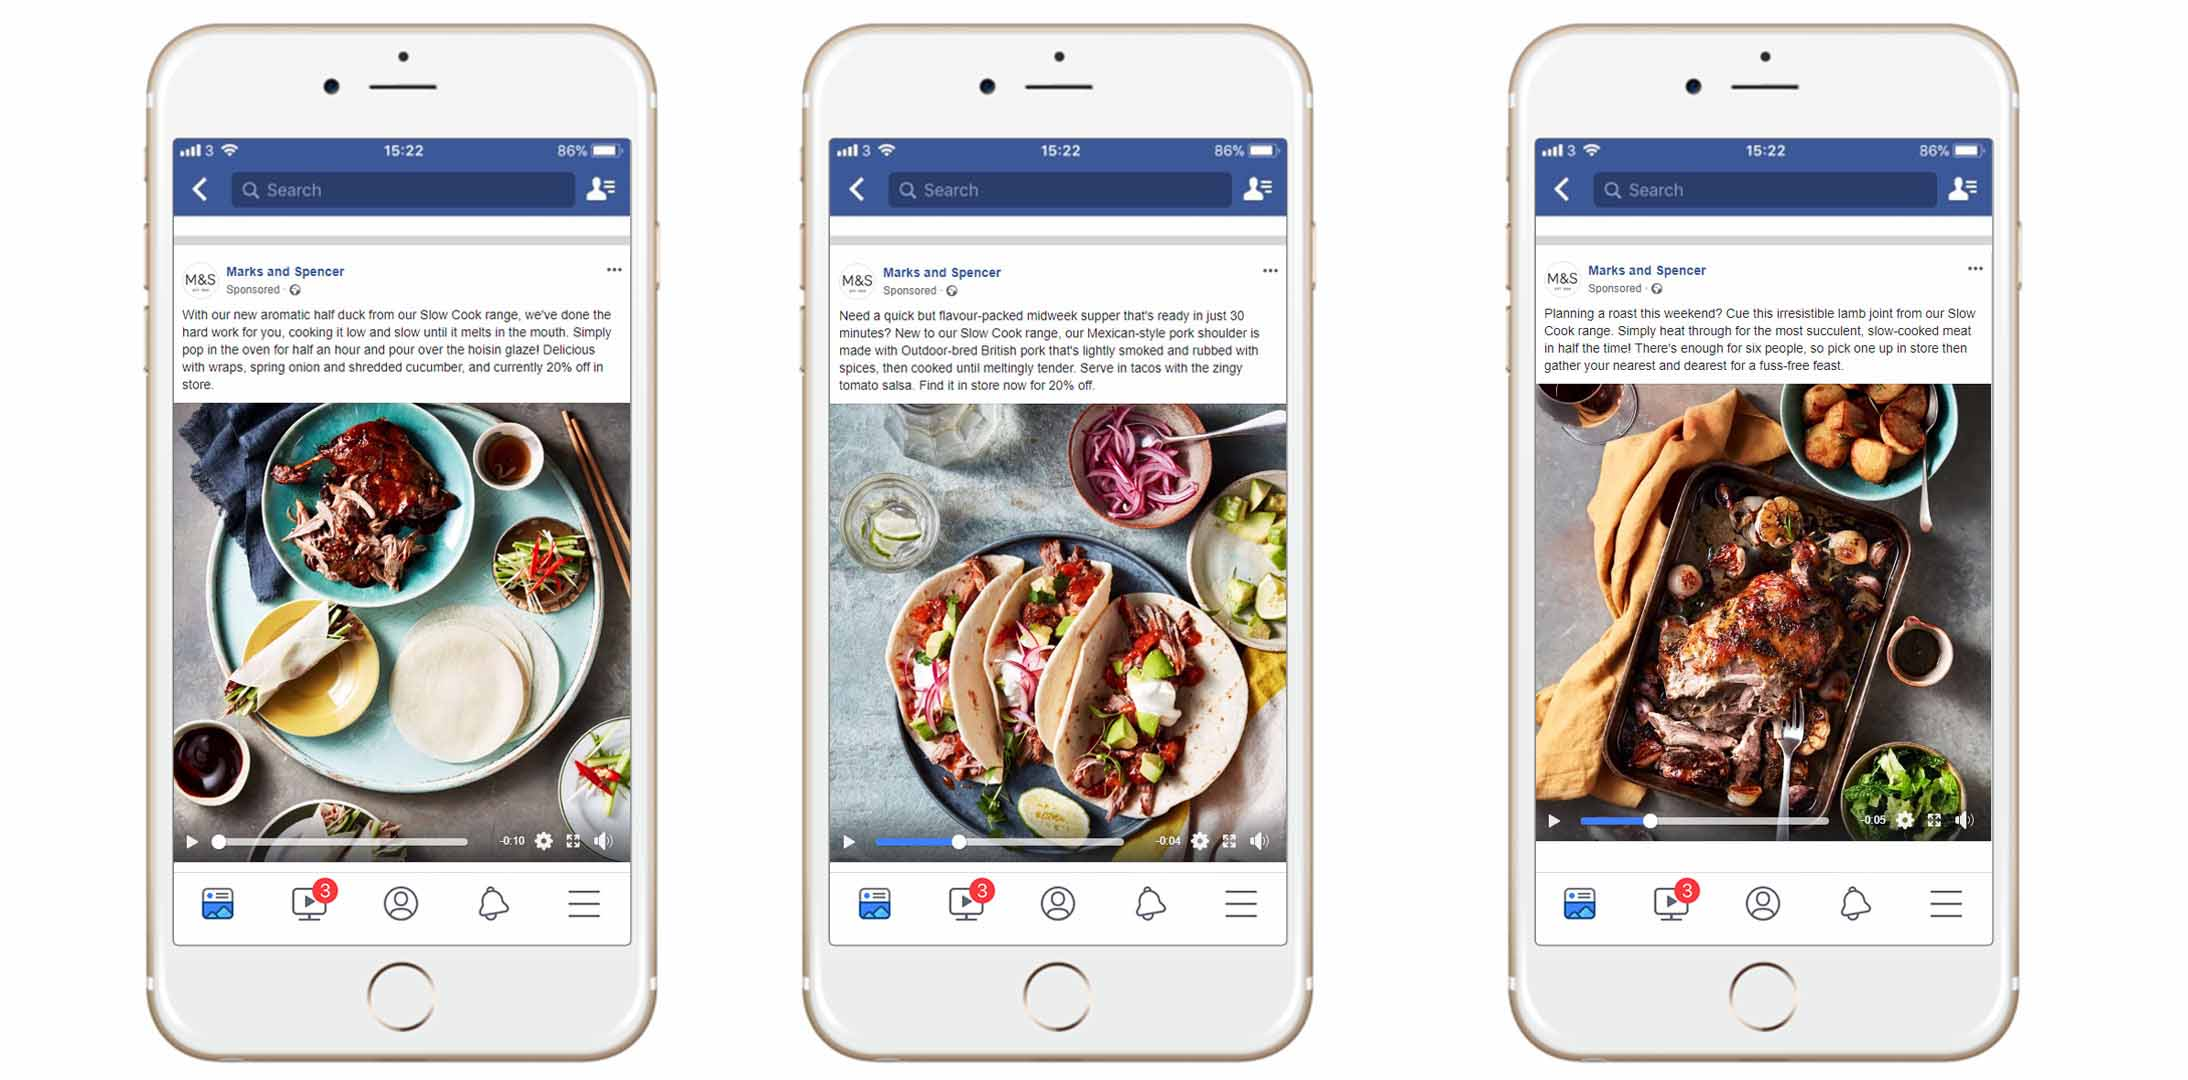 Marks & Spencer stop motion food videos for Facebook